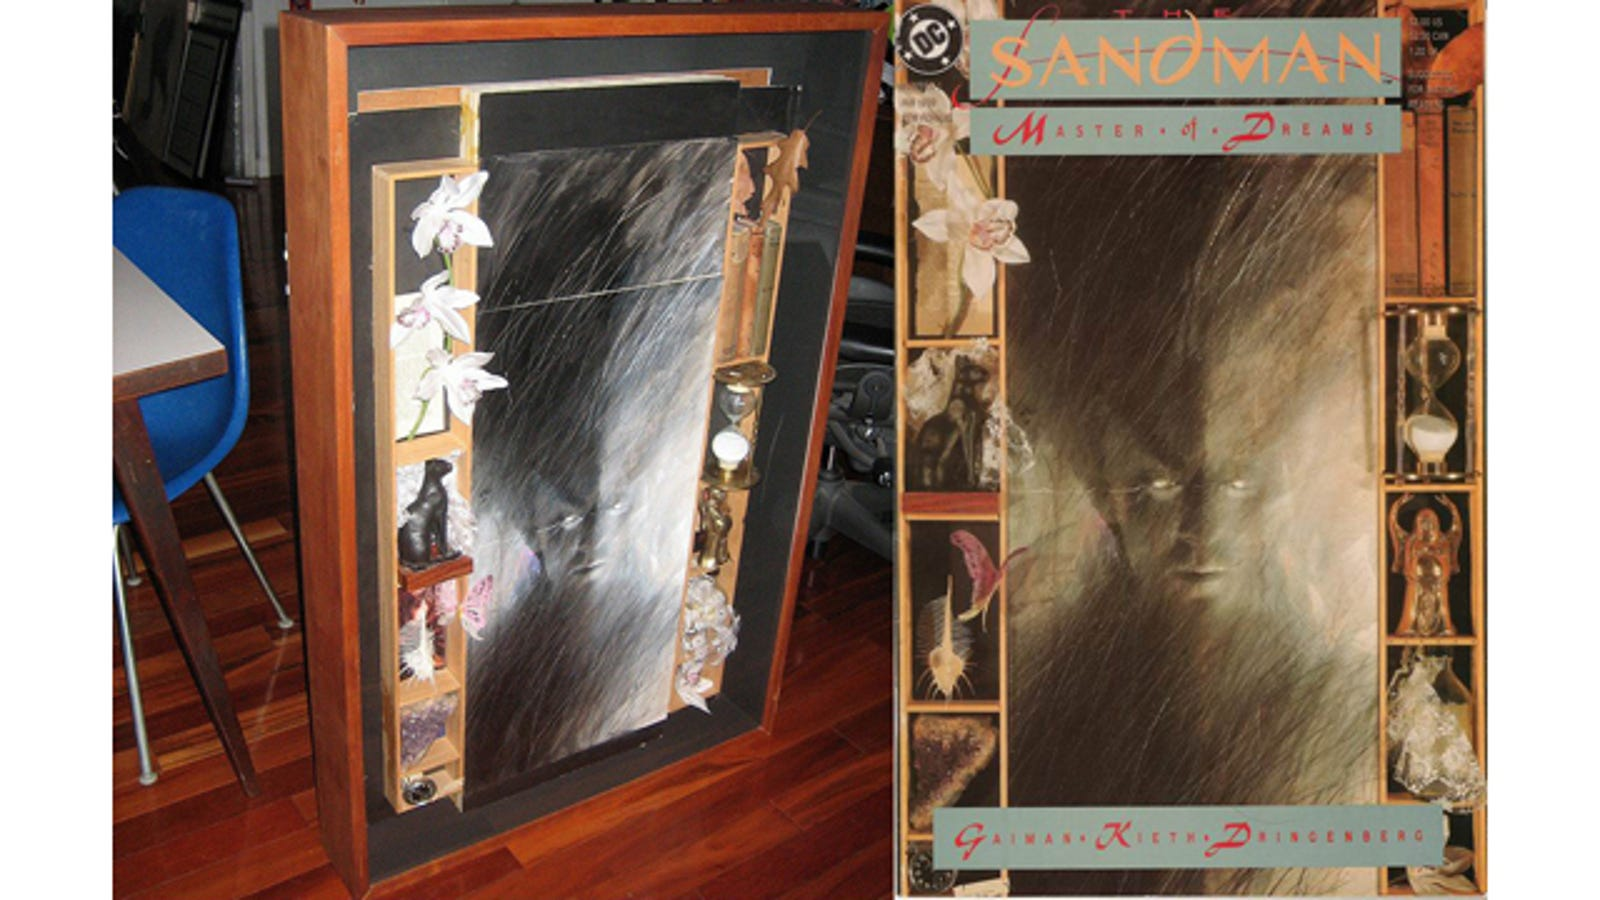 How Dave McKean created Sandman's multidimensional covers ...